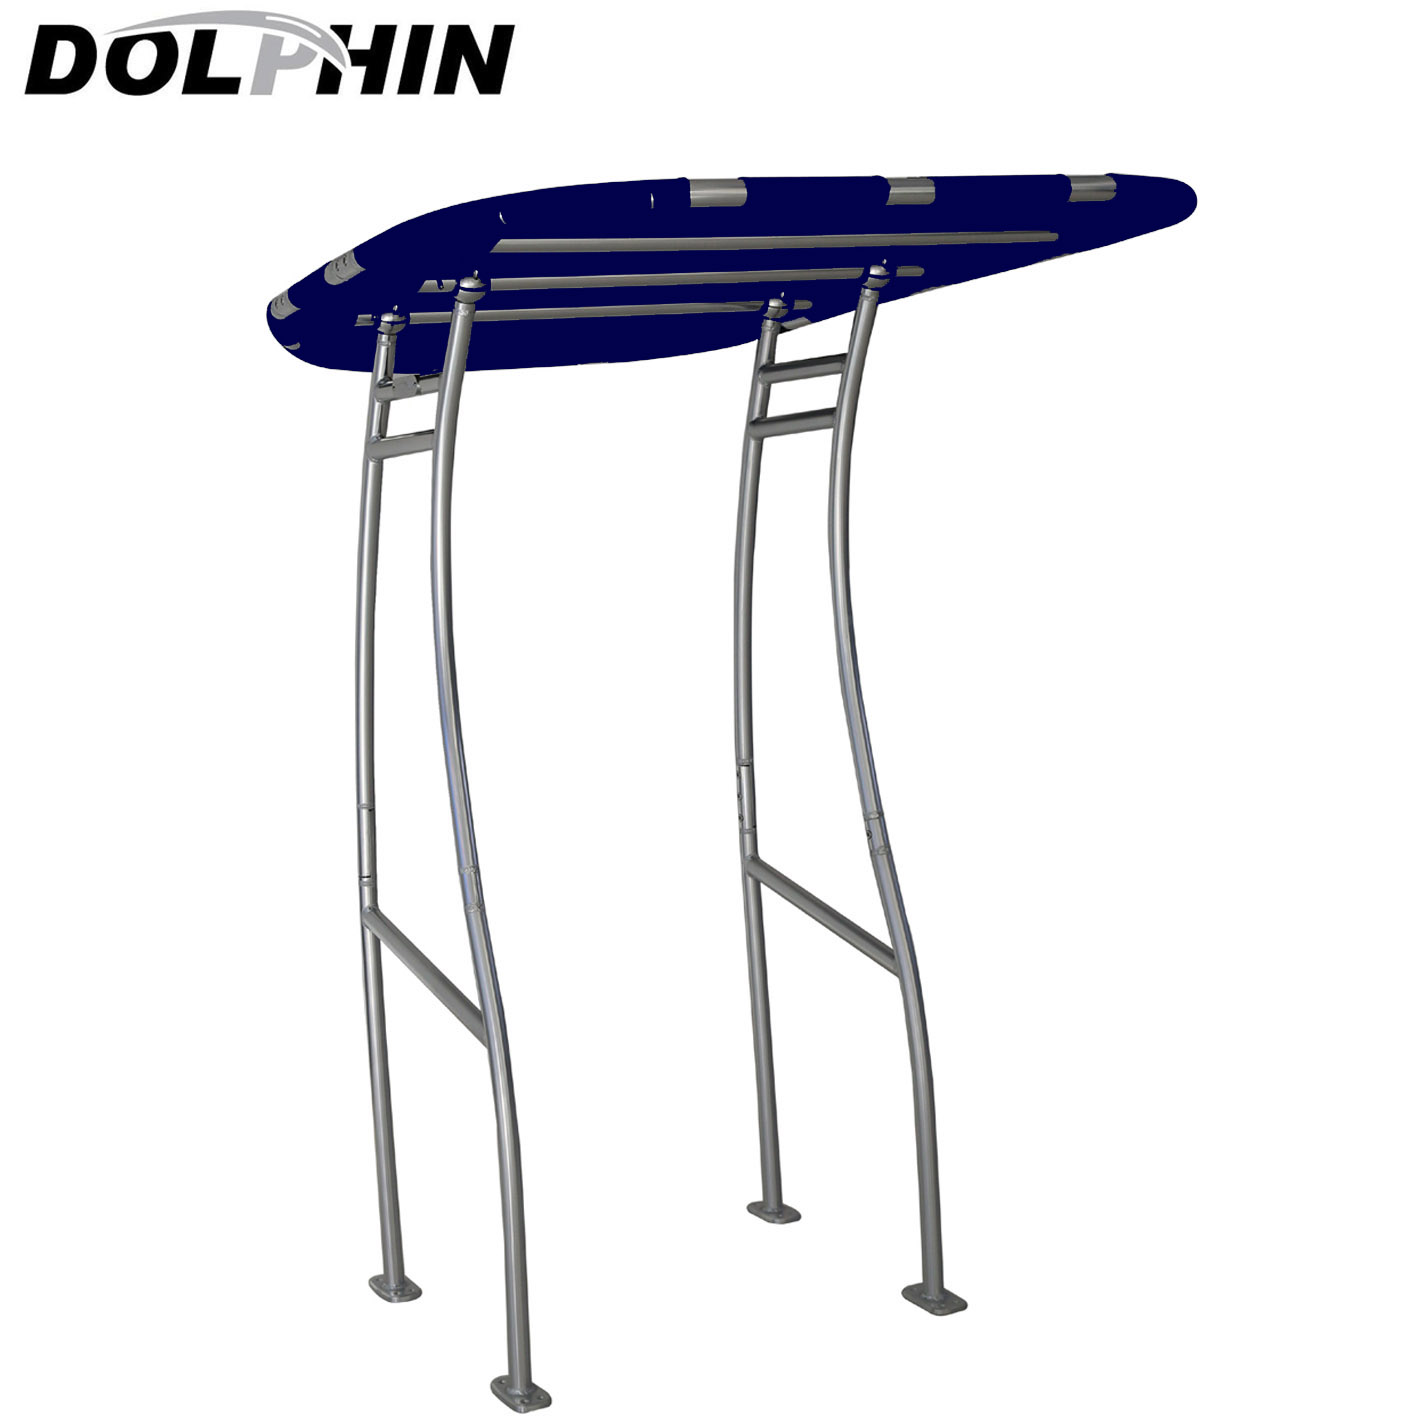 Dolphin Pro Plus T Top for small to medium size boat-navy blue&quick release knobs+antenna bracket